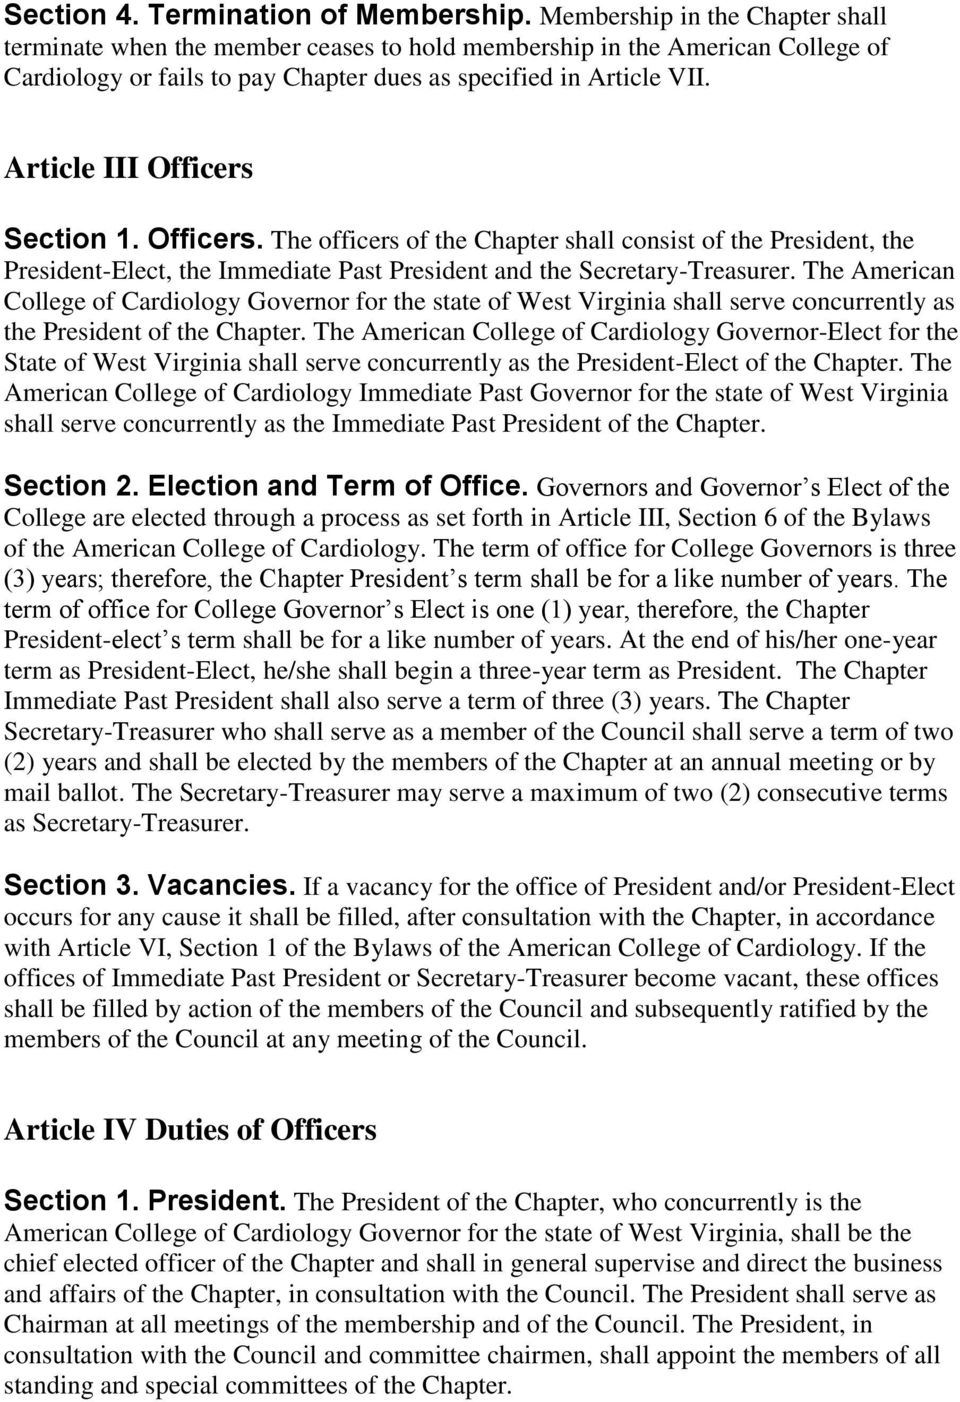 Article III Officers Section 1. Officers. The officers of the Chapter shall consist of the President, the President-Elect, the Immediate Past President and the Secretary-Treasurer.